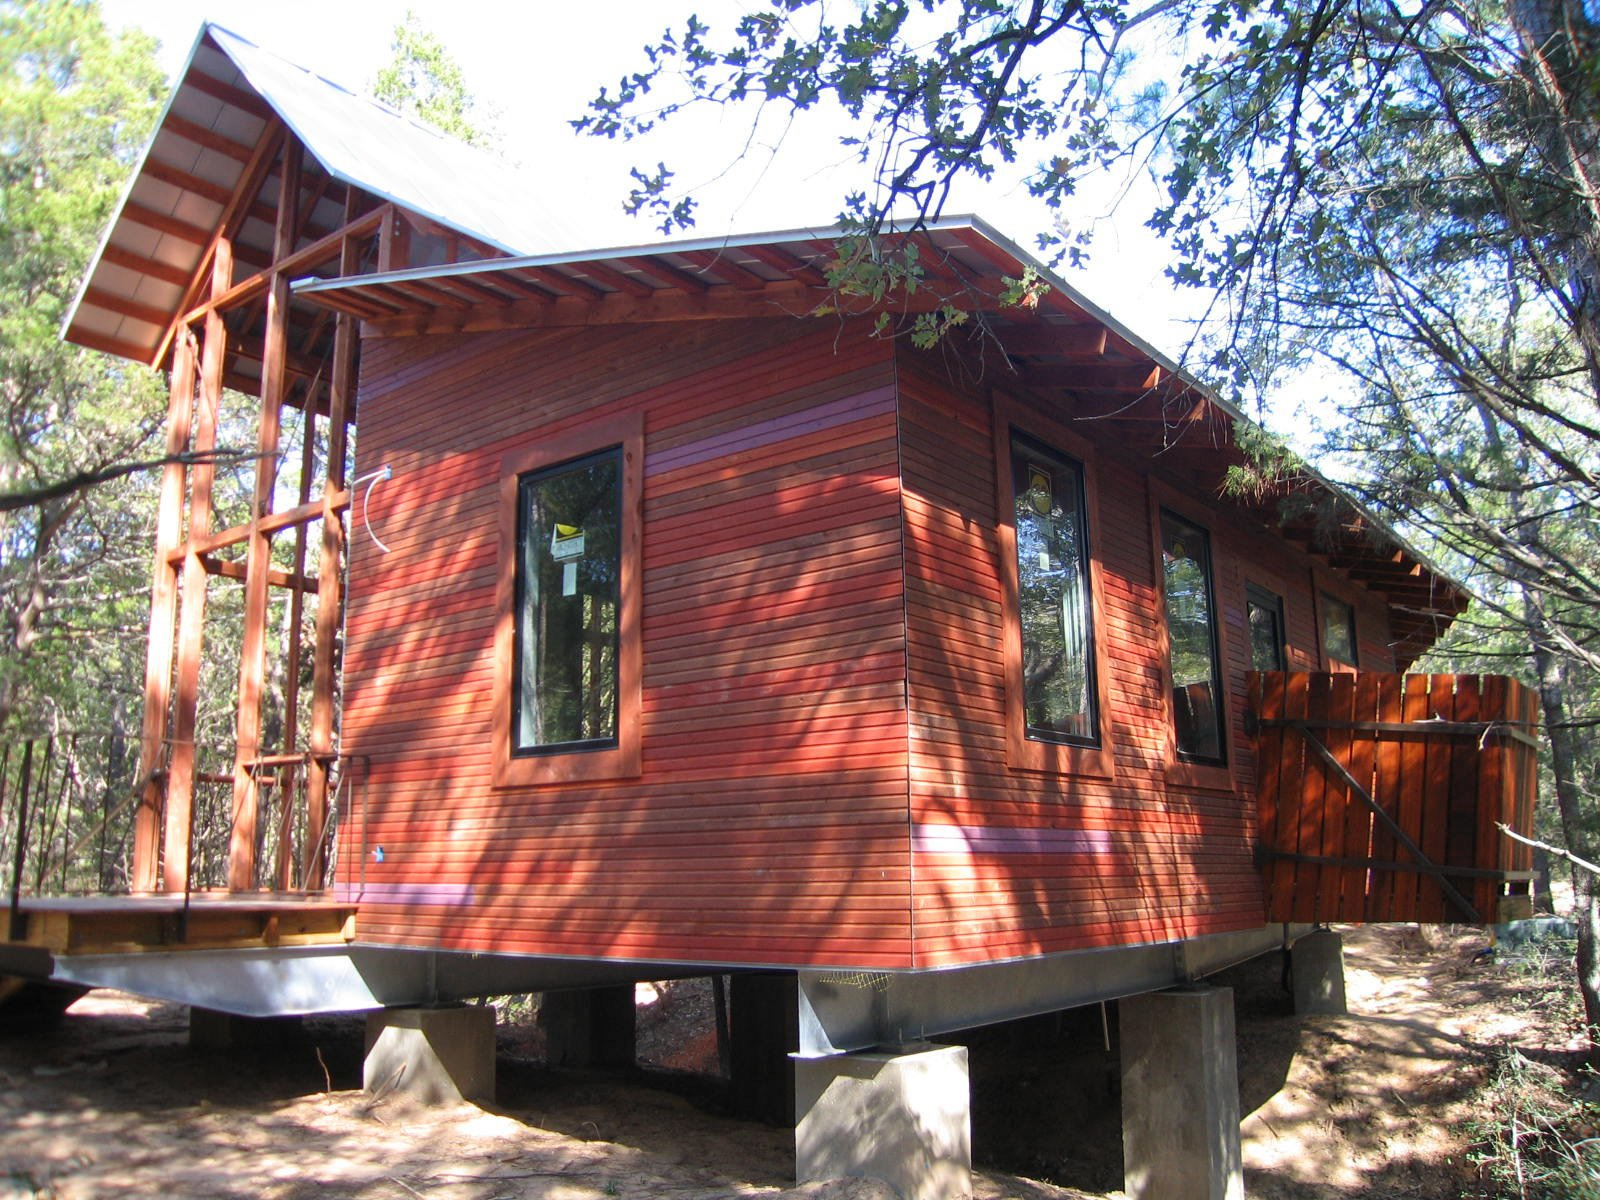 """The structure was built onto a concrete-and-steel base. At left is the porch, pre-screening; at right is a cantilevered outdoor shower off the bathroom. The exterior cladding is cedar, stained in four different colors then placed randomly """"for a different palette of colors, like a blend of bricks,"""" says Panton. """"The owner's favorite color is purple, so we added a purple board here and there.""""  Texas Bunkhouse by Erika Heet"""